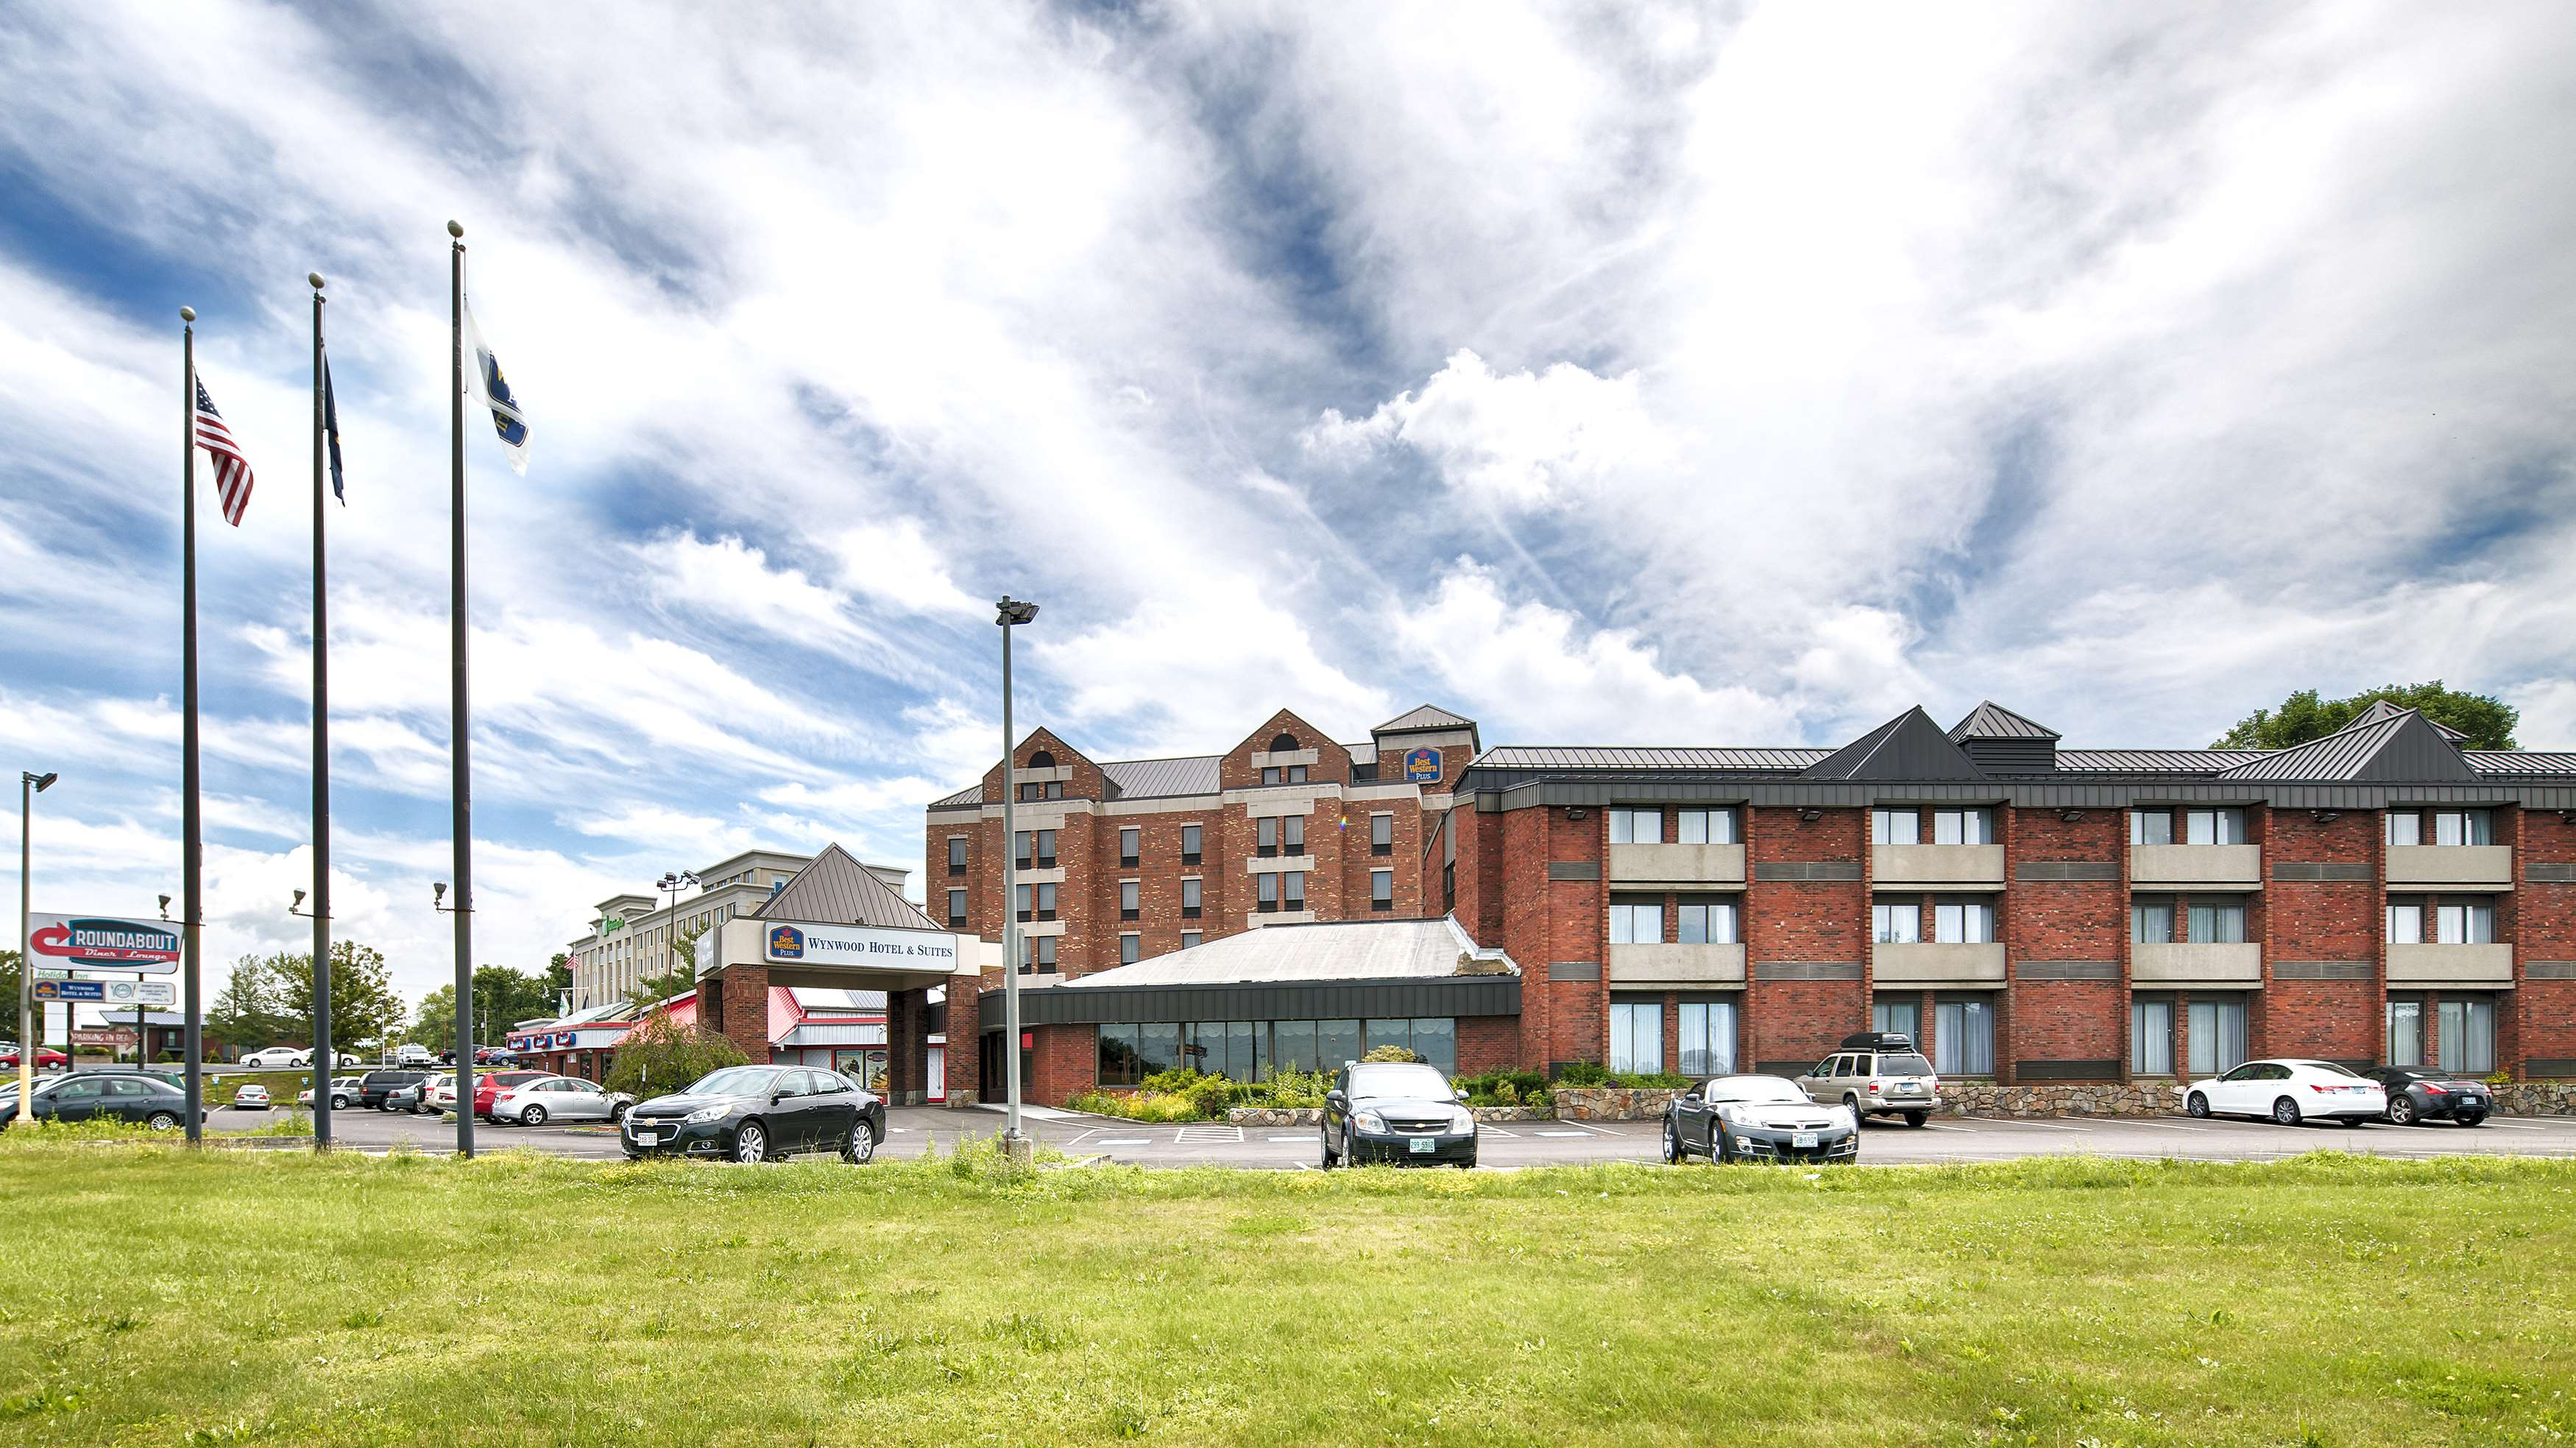 best western plus portsmouth hotel and suites portsmouth